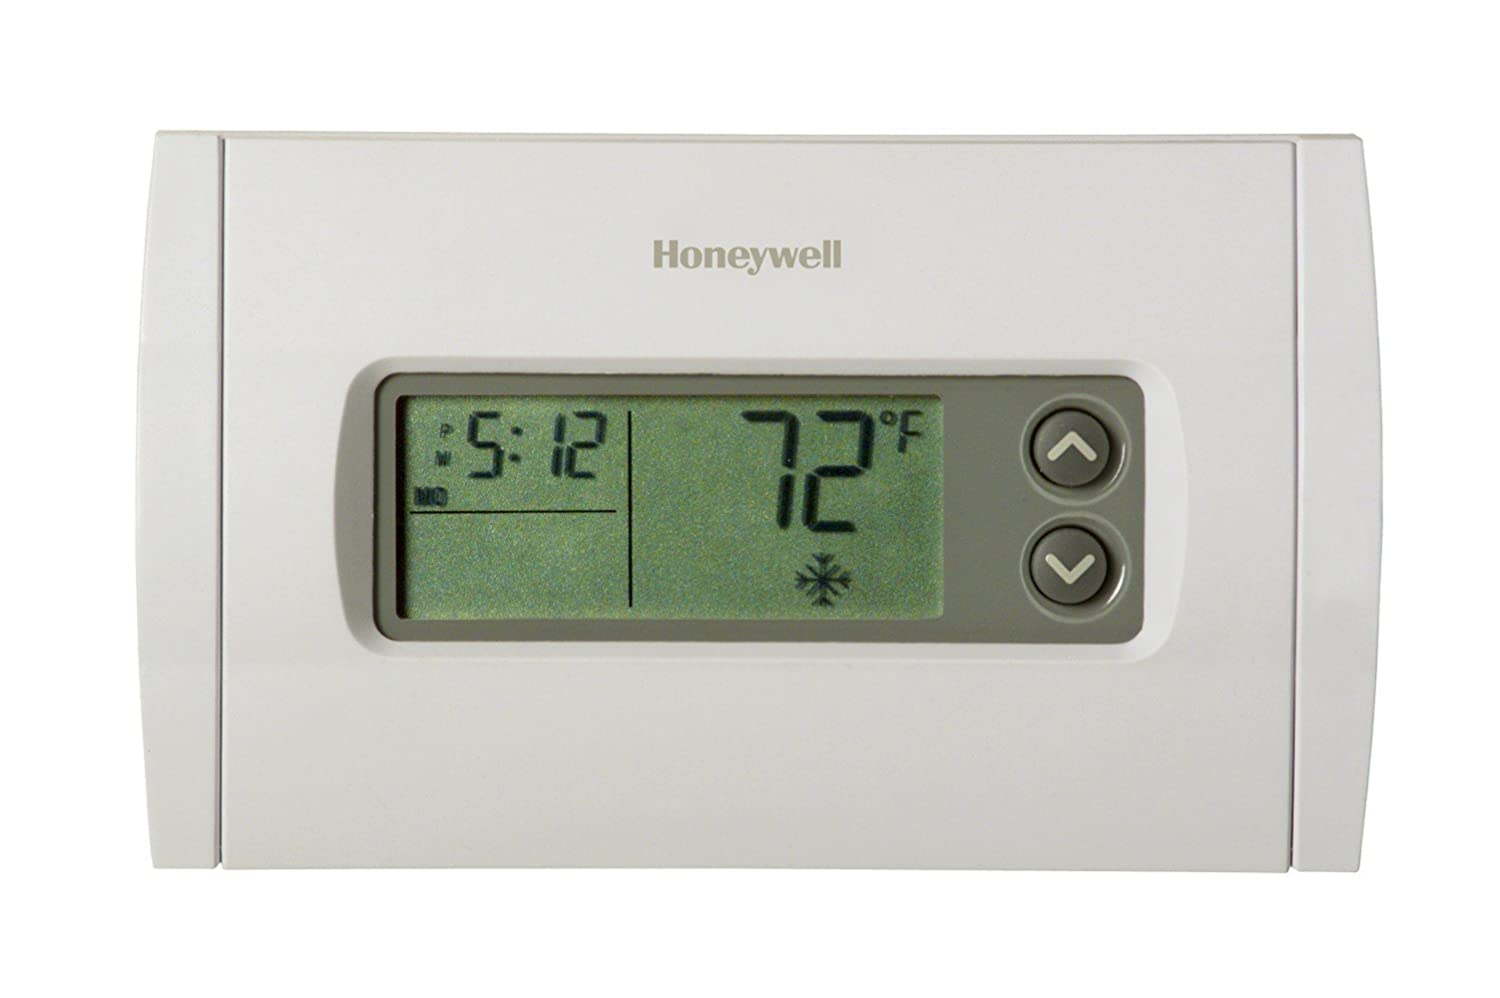 Honeywell Rth230b 5 2 Day Programmable Thermostat Wiring Diagram 2wire System Smart Household Thermostats